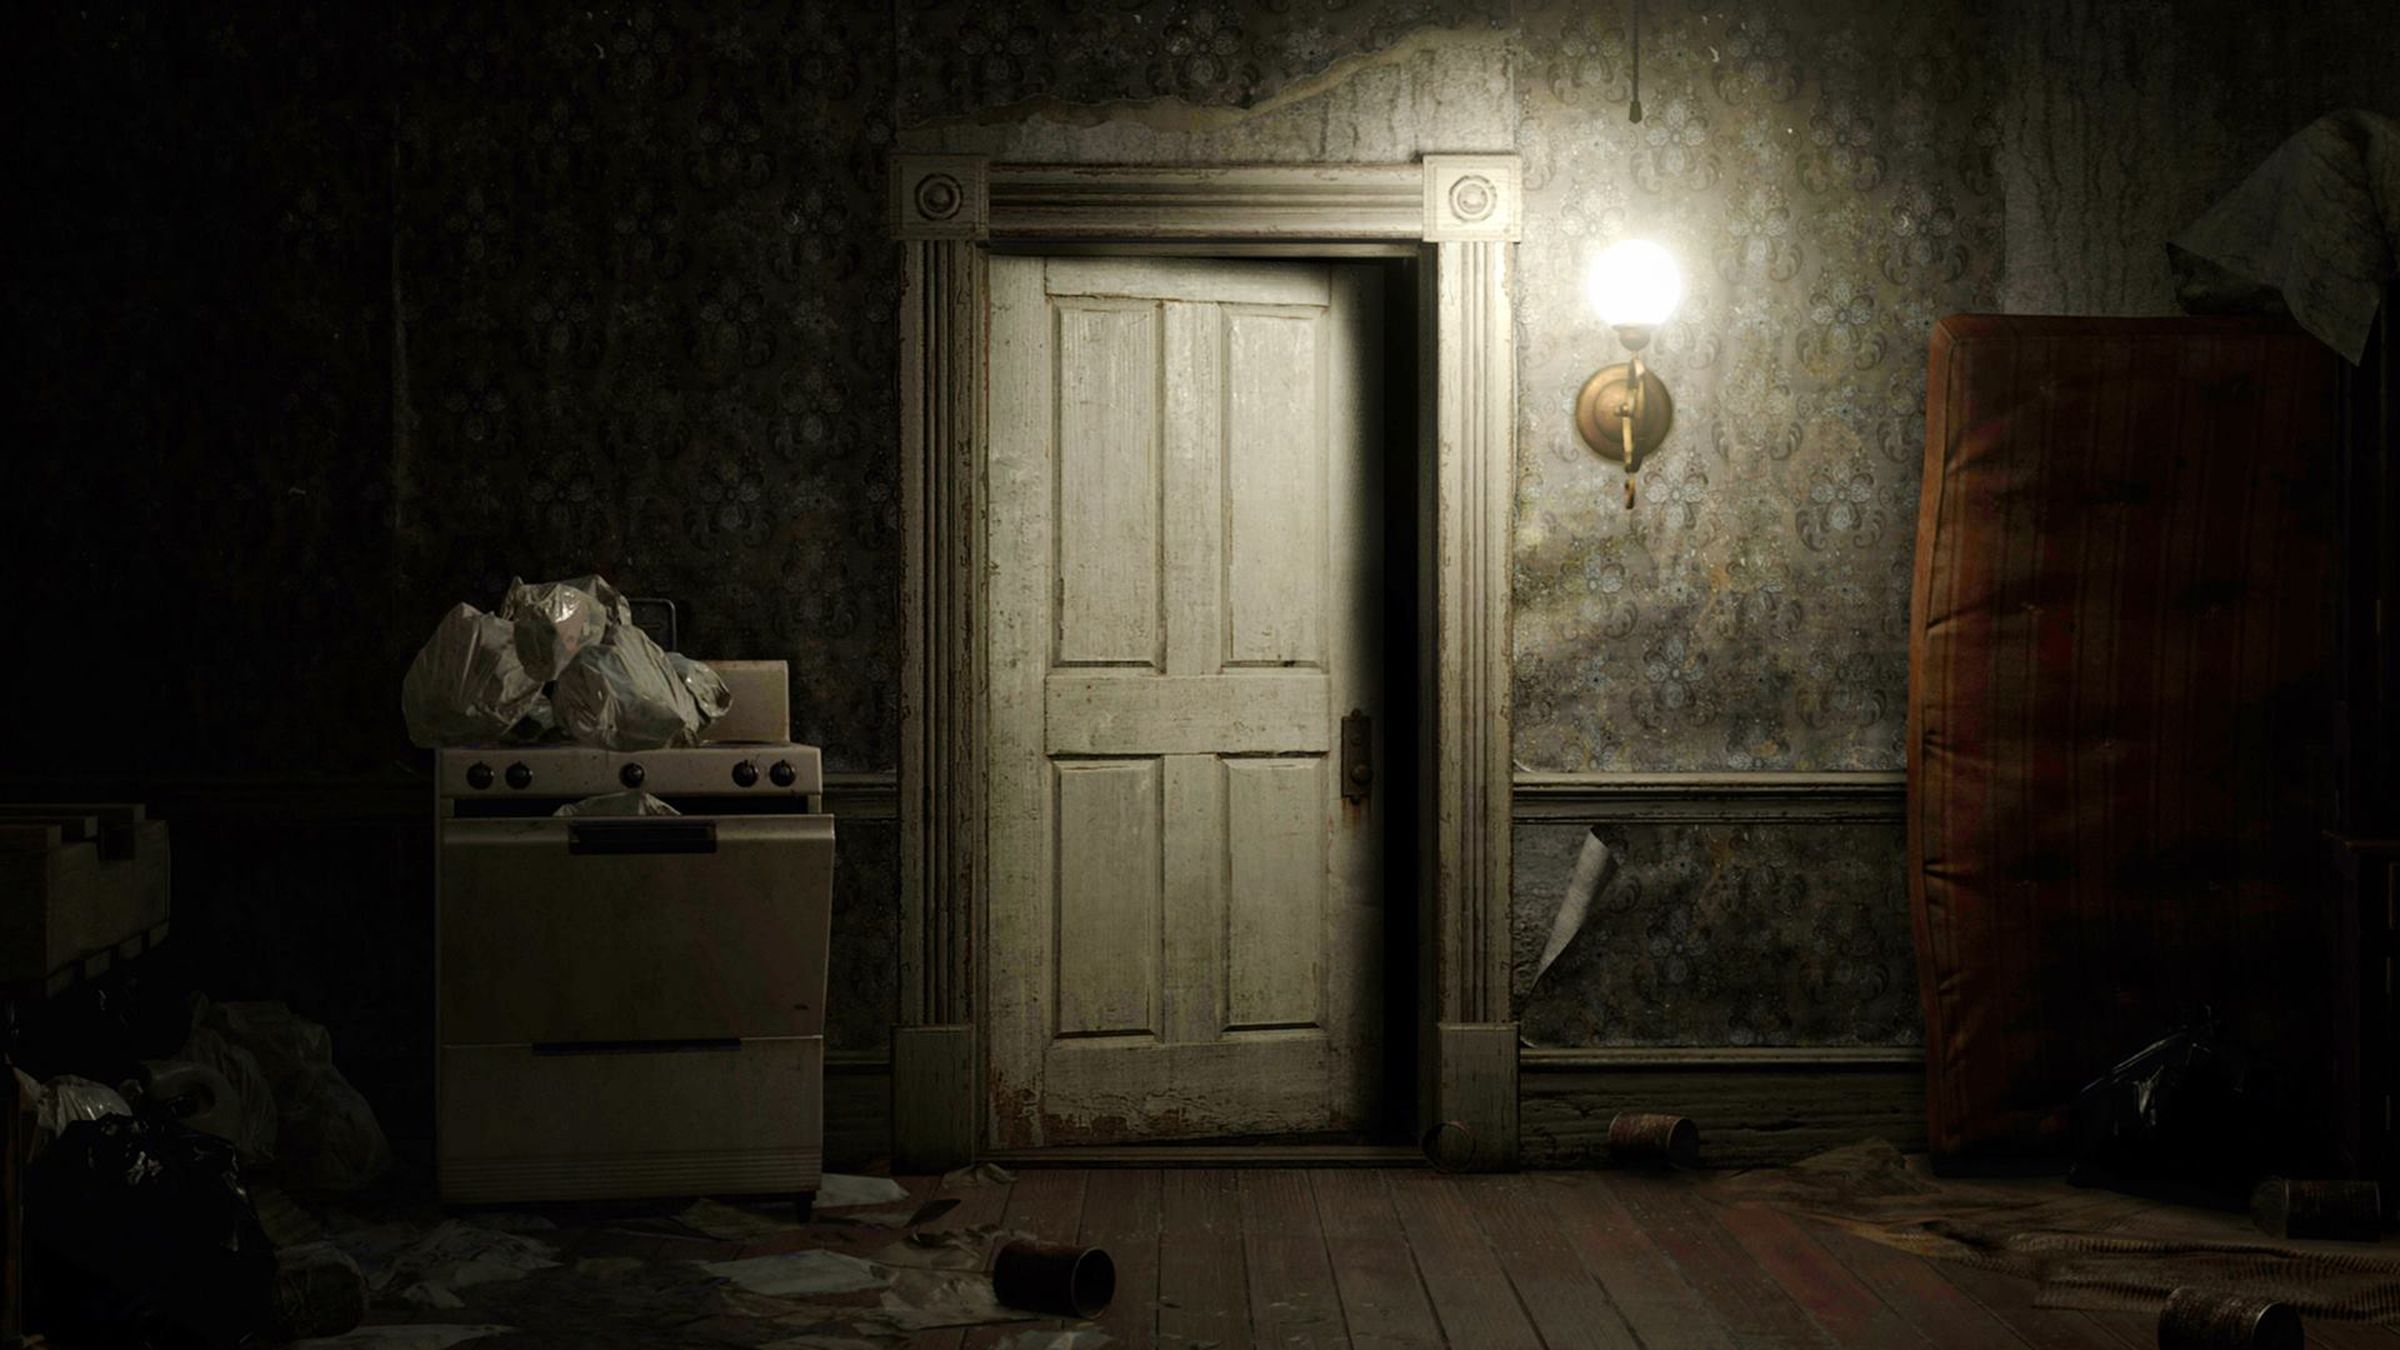 I Cried For You On The Kitchen Floor To Make Resident Evil 7 Less Scary Capcom Says You Should Make